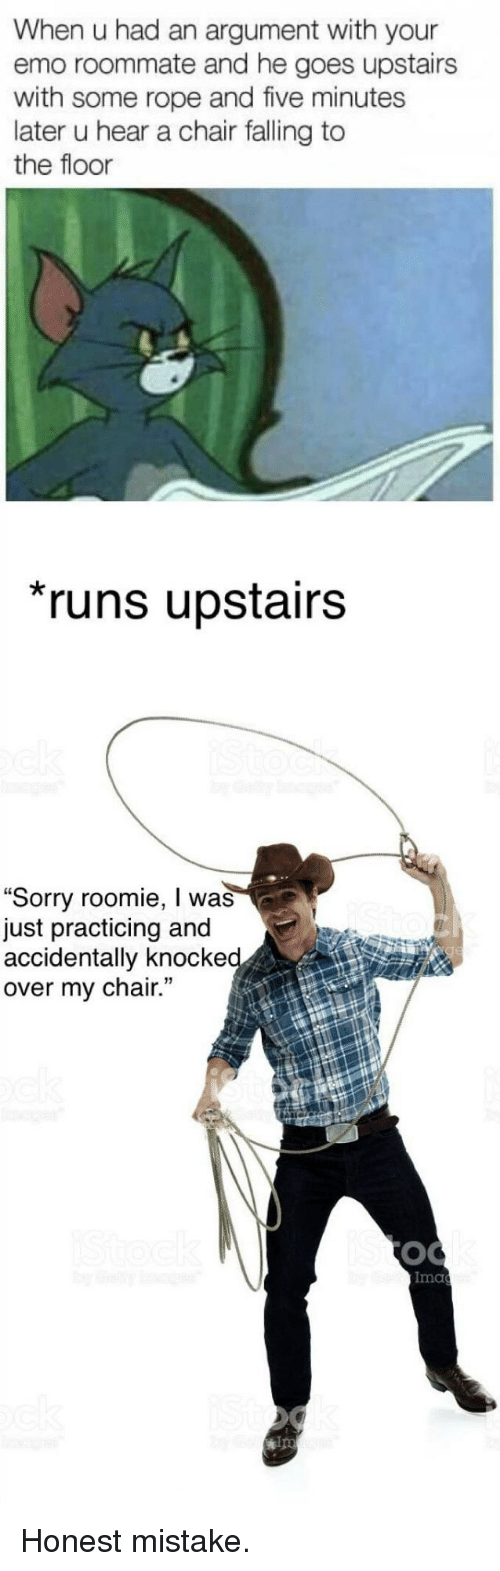 """Emo, Roommate, and Sorry: When u had an argument with your  emo roommate and he goes upstairs  with some rope and five minutes  later u hear a chair falling to  the floor  runs upstairs  """"Sorry roomie, I was  just practicing and  accidentally knocke  over my chair.  Ima  ips <p>Honest mistake.</p>"""